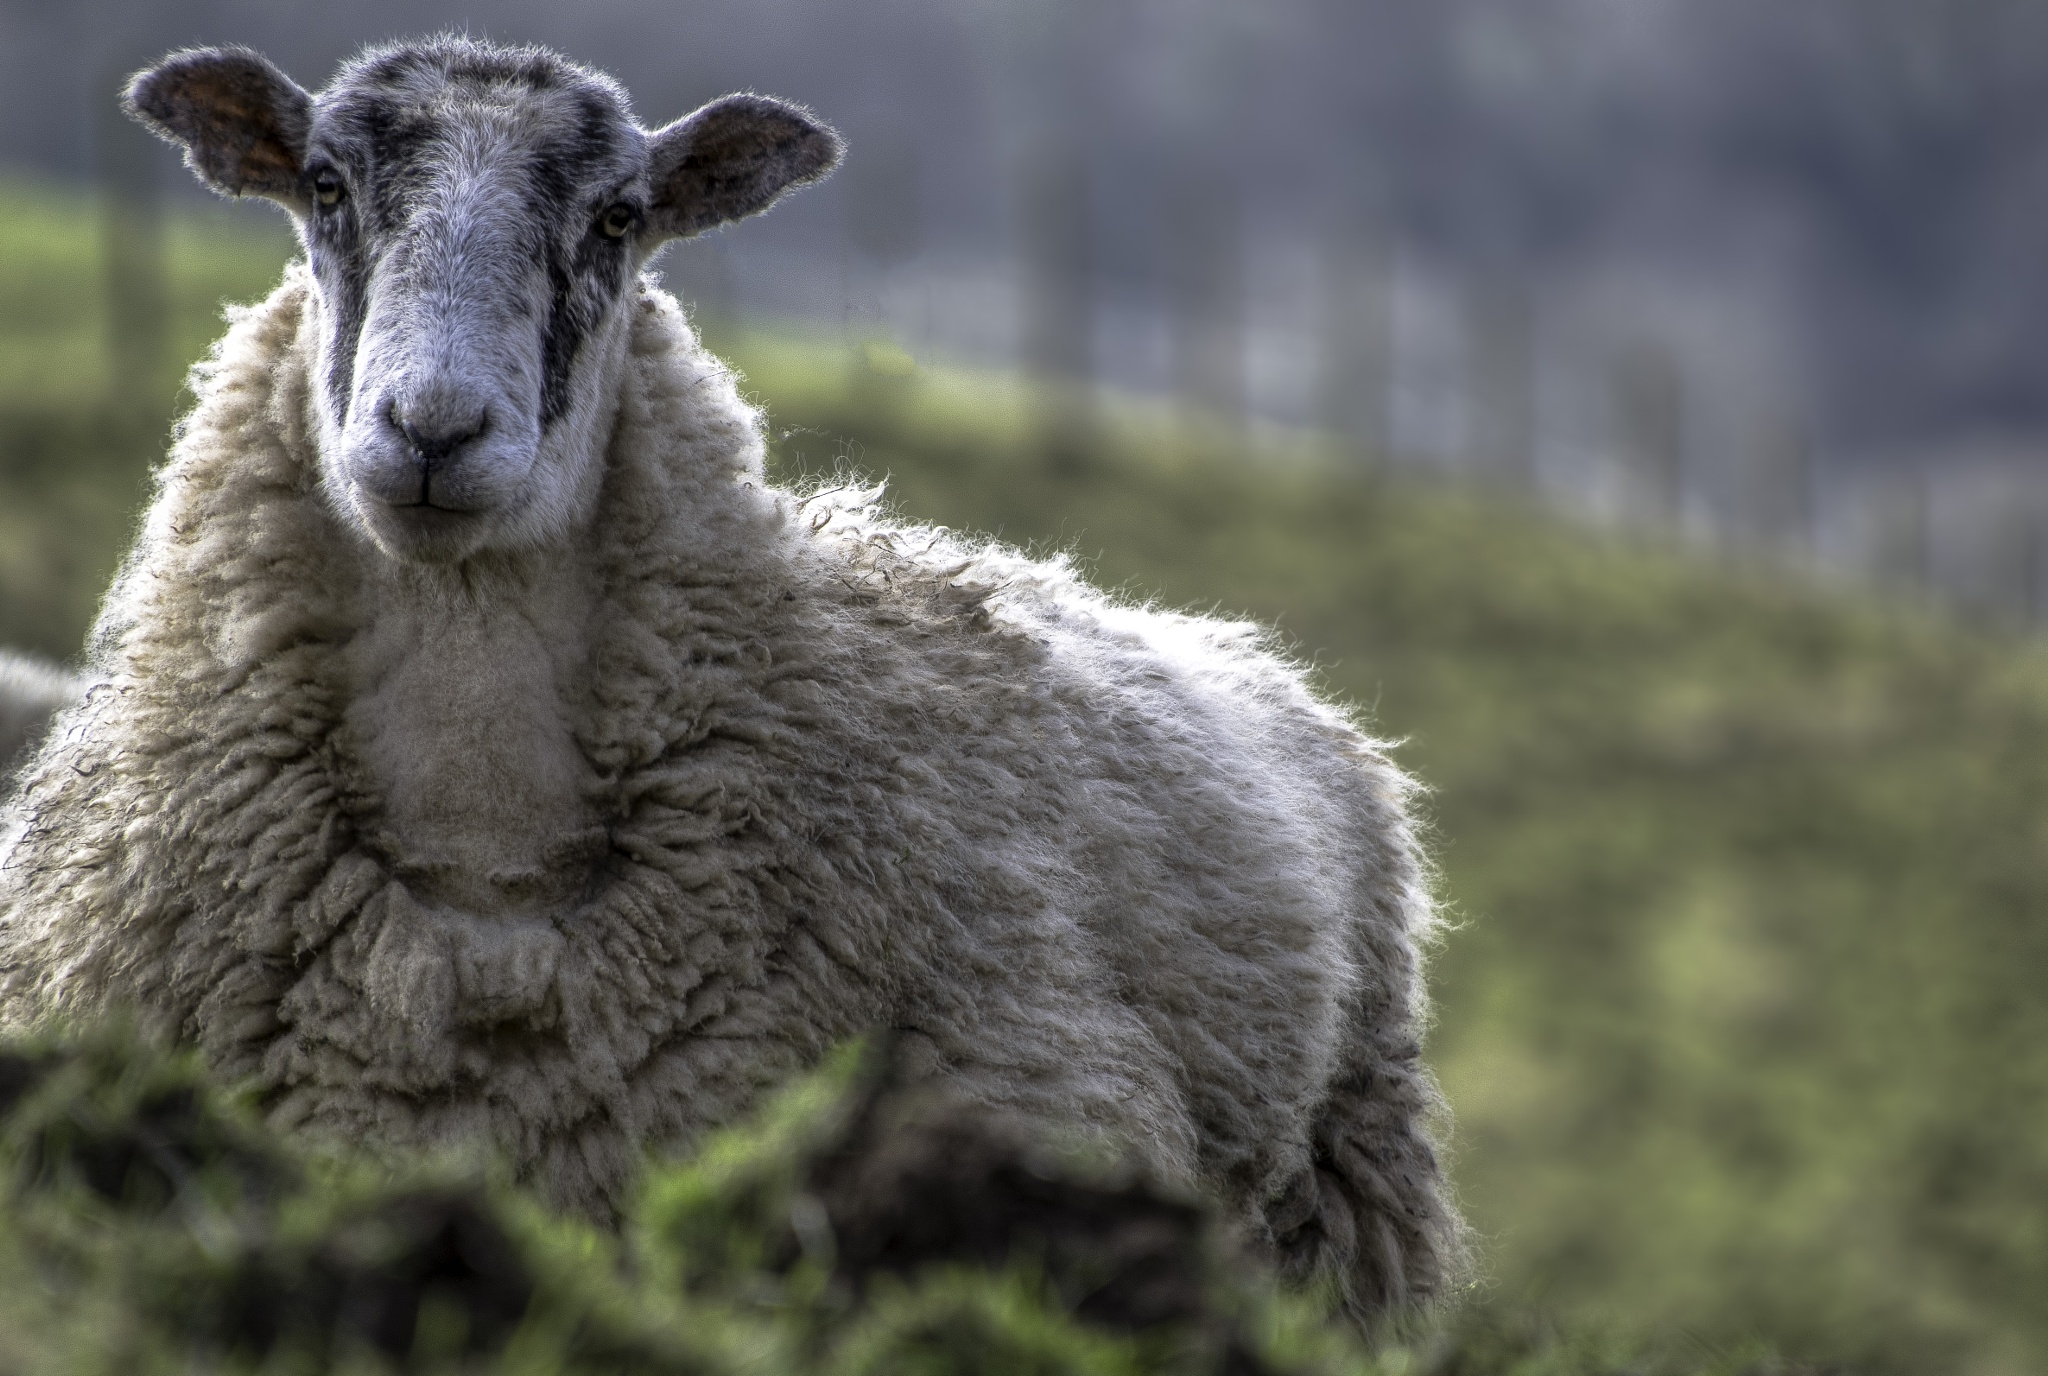 local sheep by phillip ticehurst